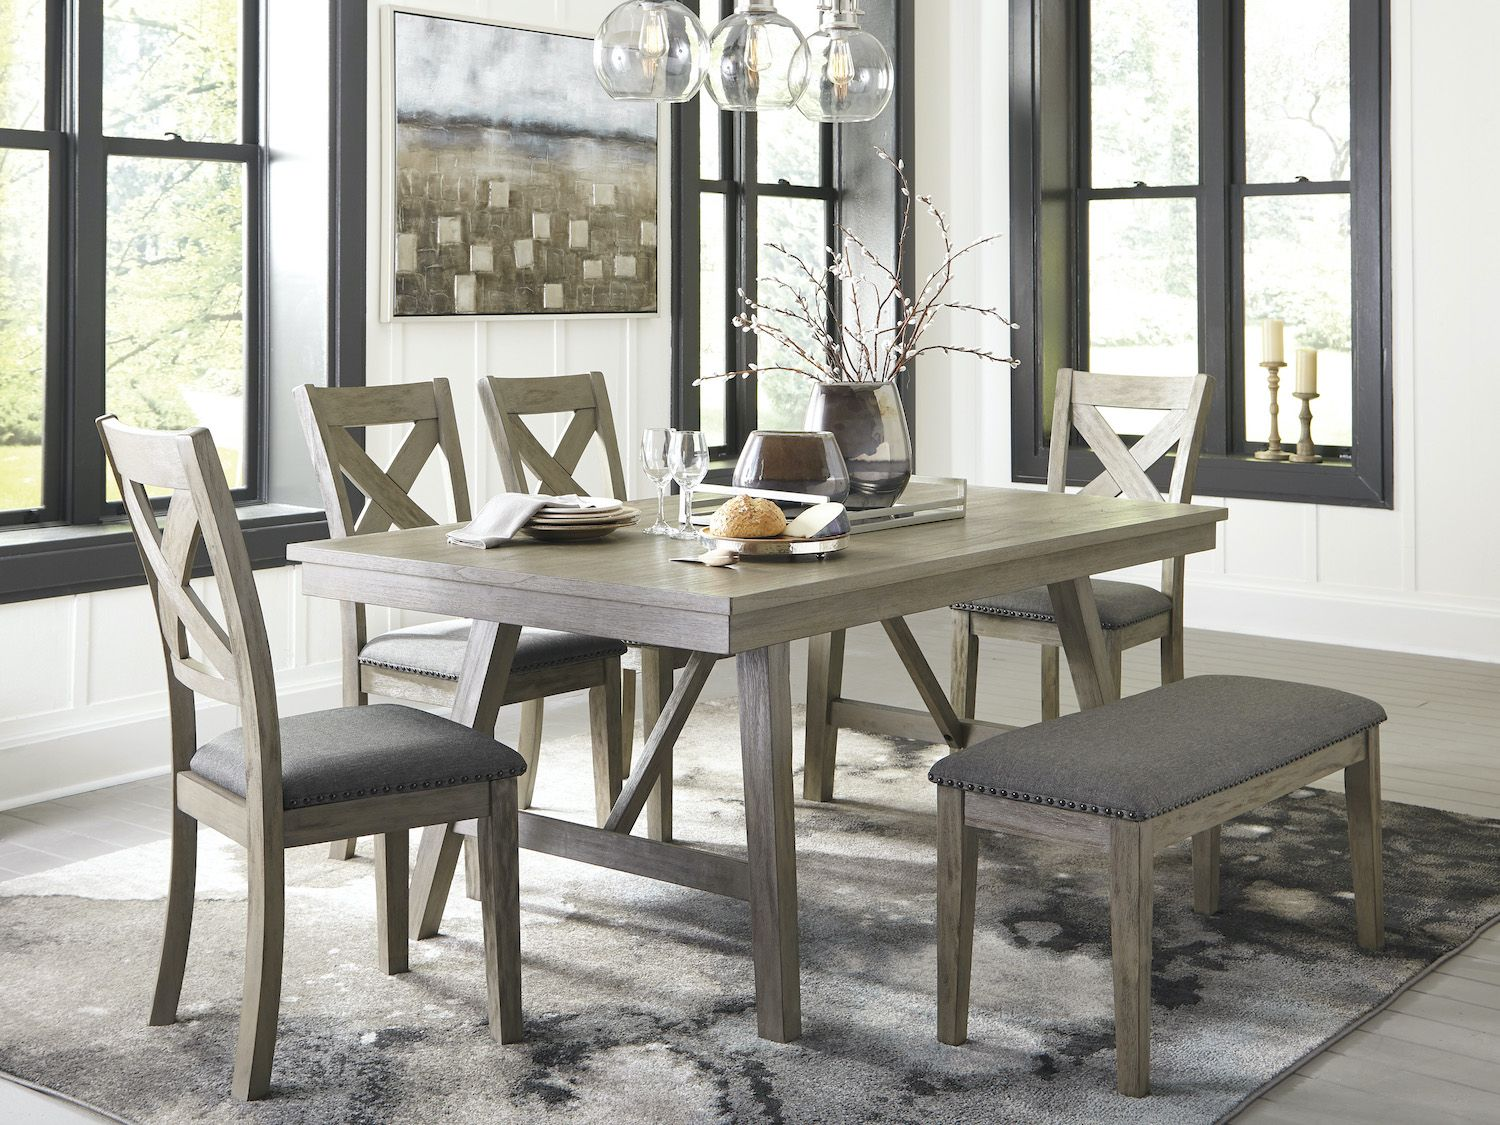 Modern Dining Table With Bench  Farmhouse Style  Aldwin 9 PC ...